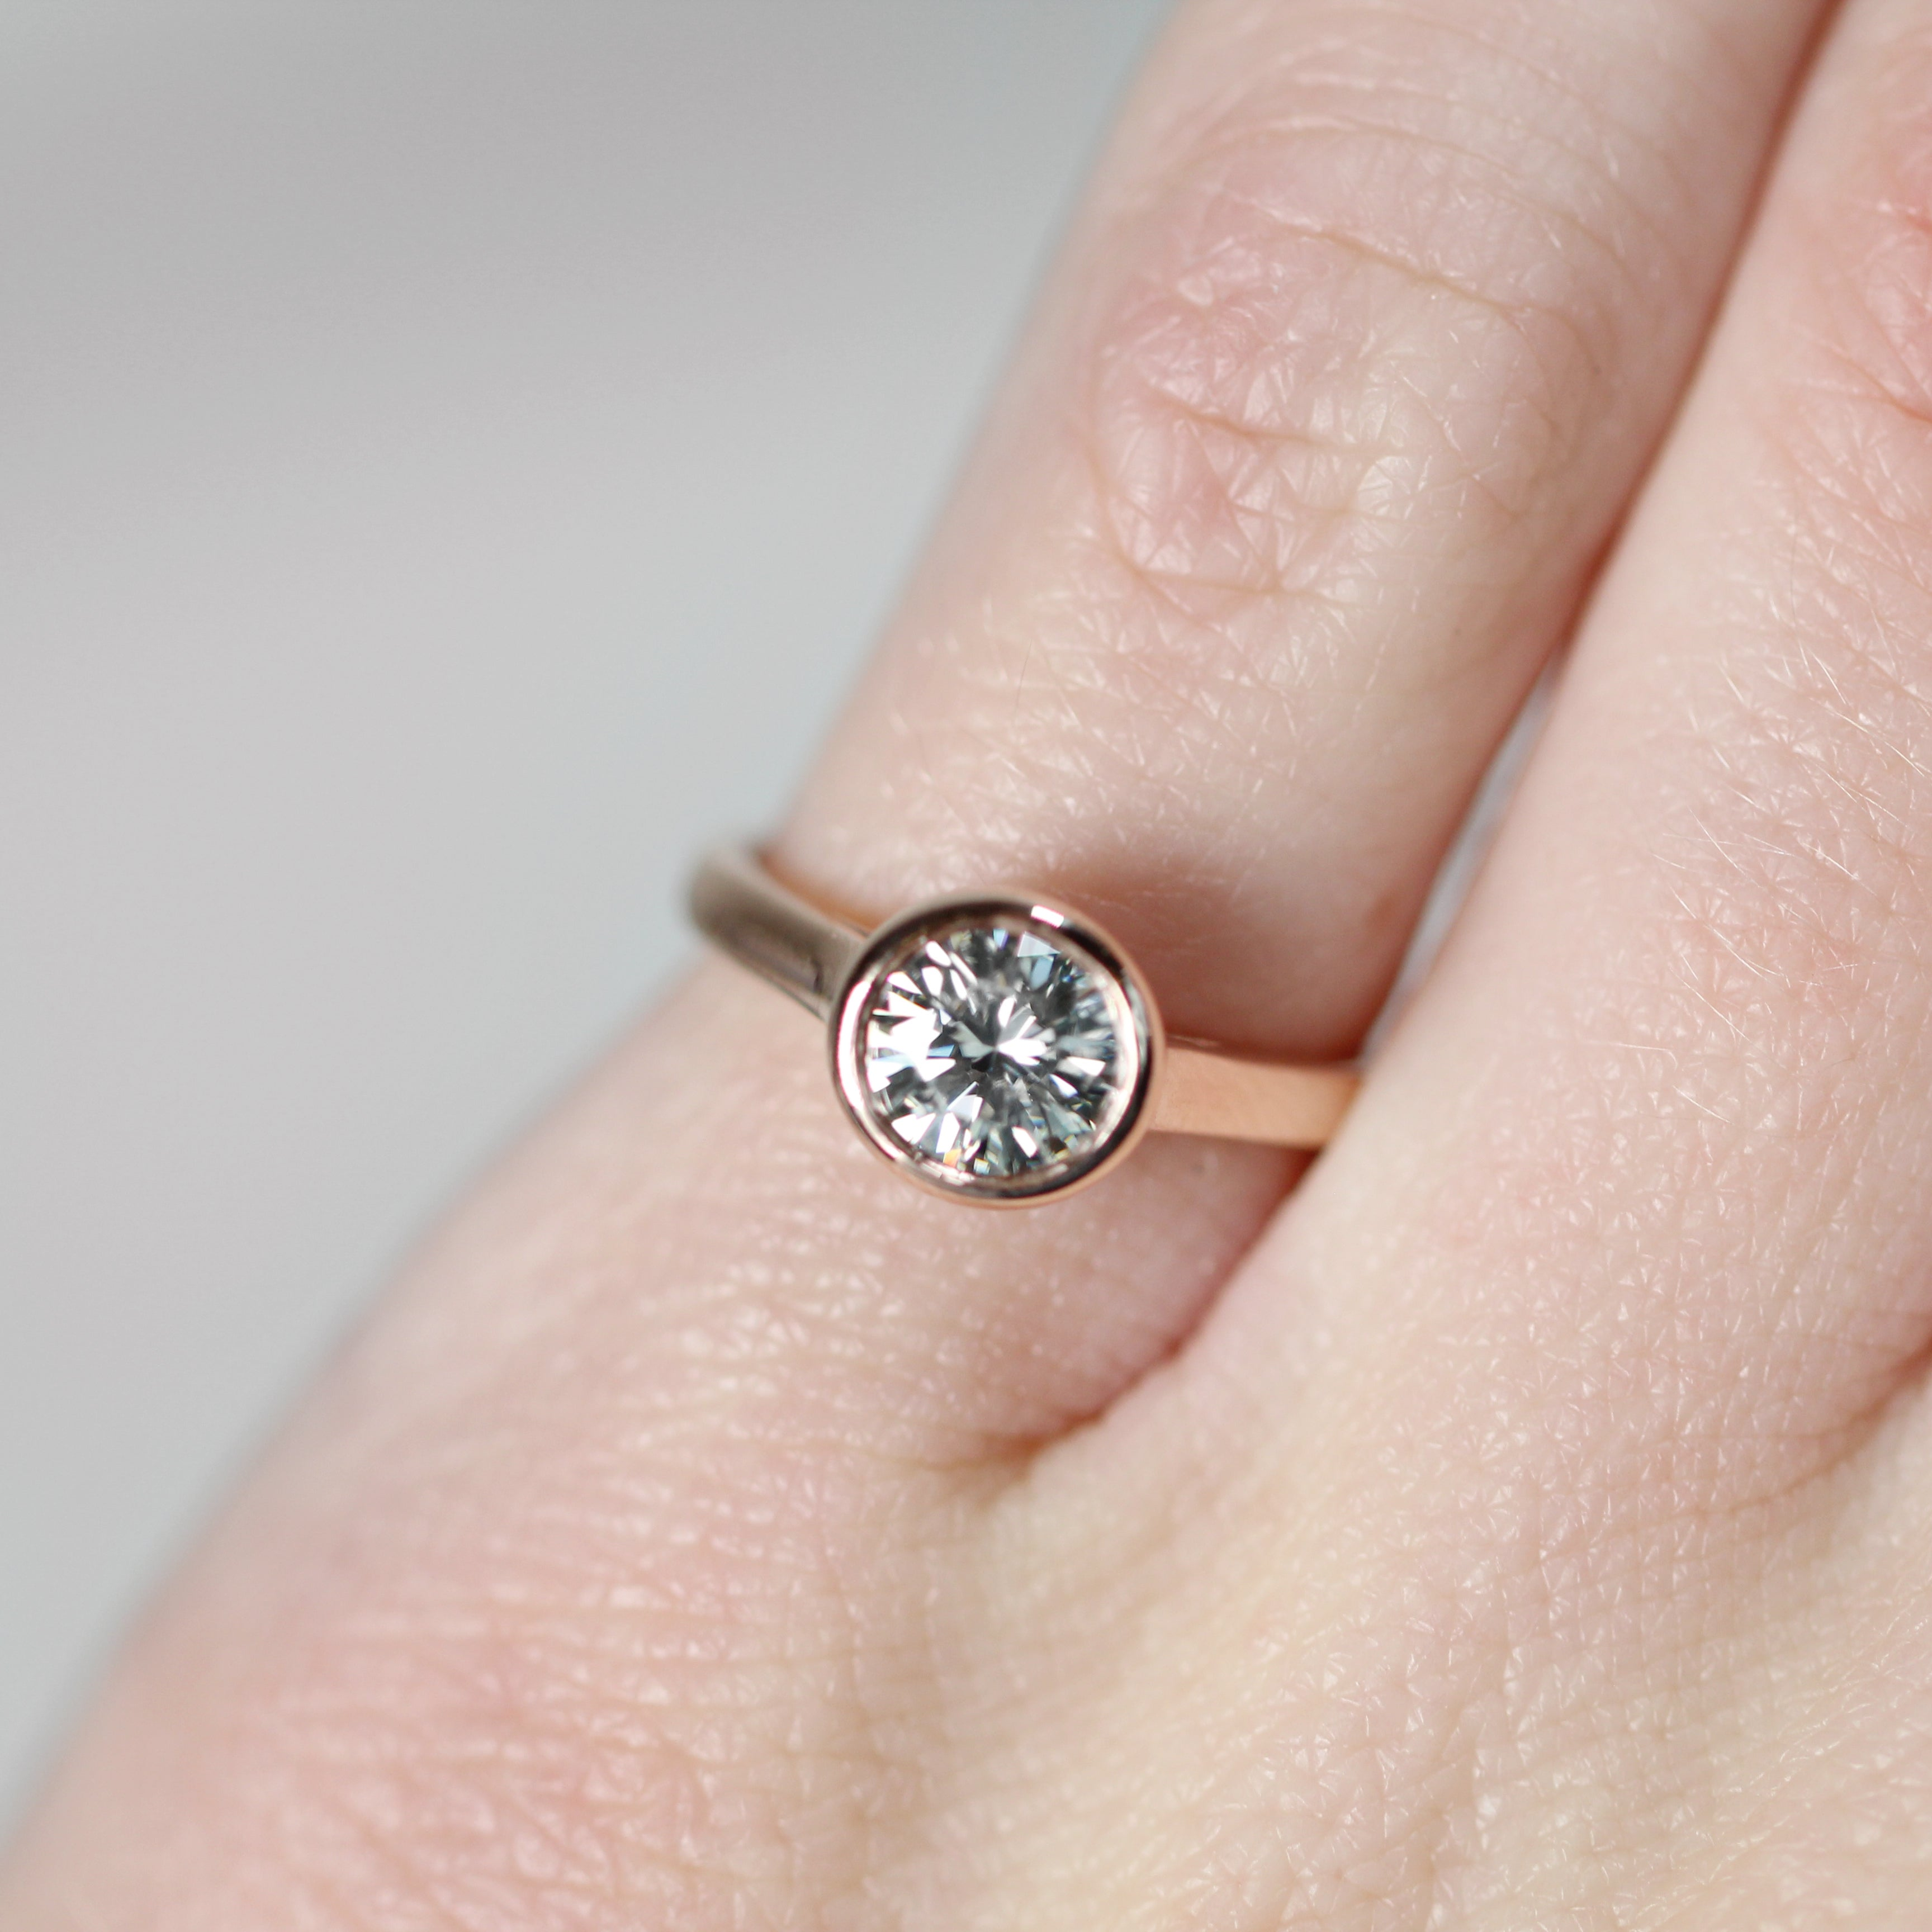 Octavia Ring with .74ct White Moissanite in 10k Rose Gold - Ready to Size and Ship - Midwinter Co. Alternative Bridal Rings and Modern Fine Jewelry